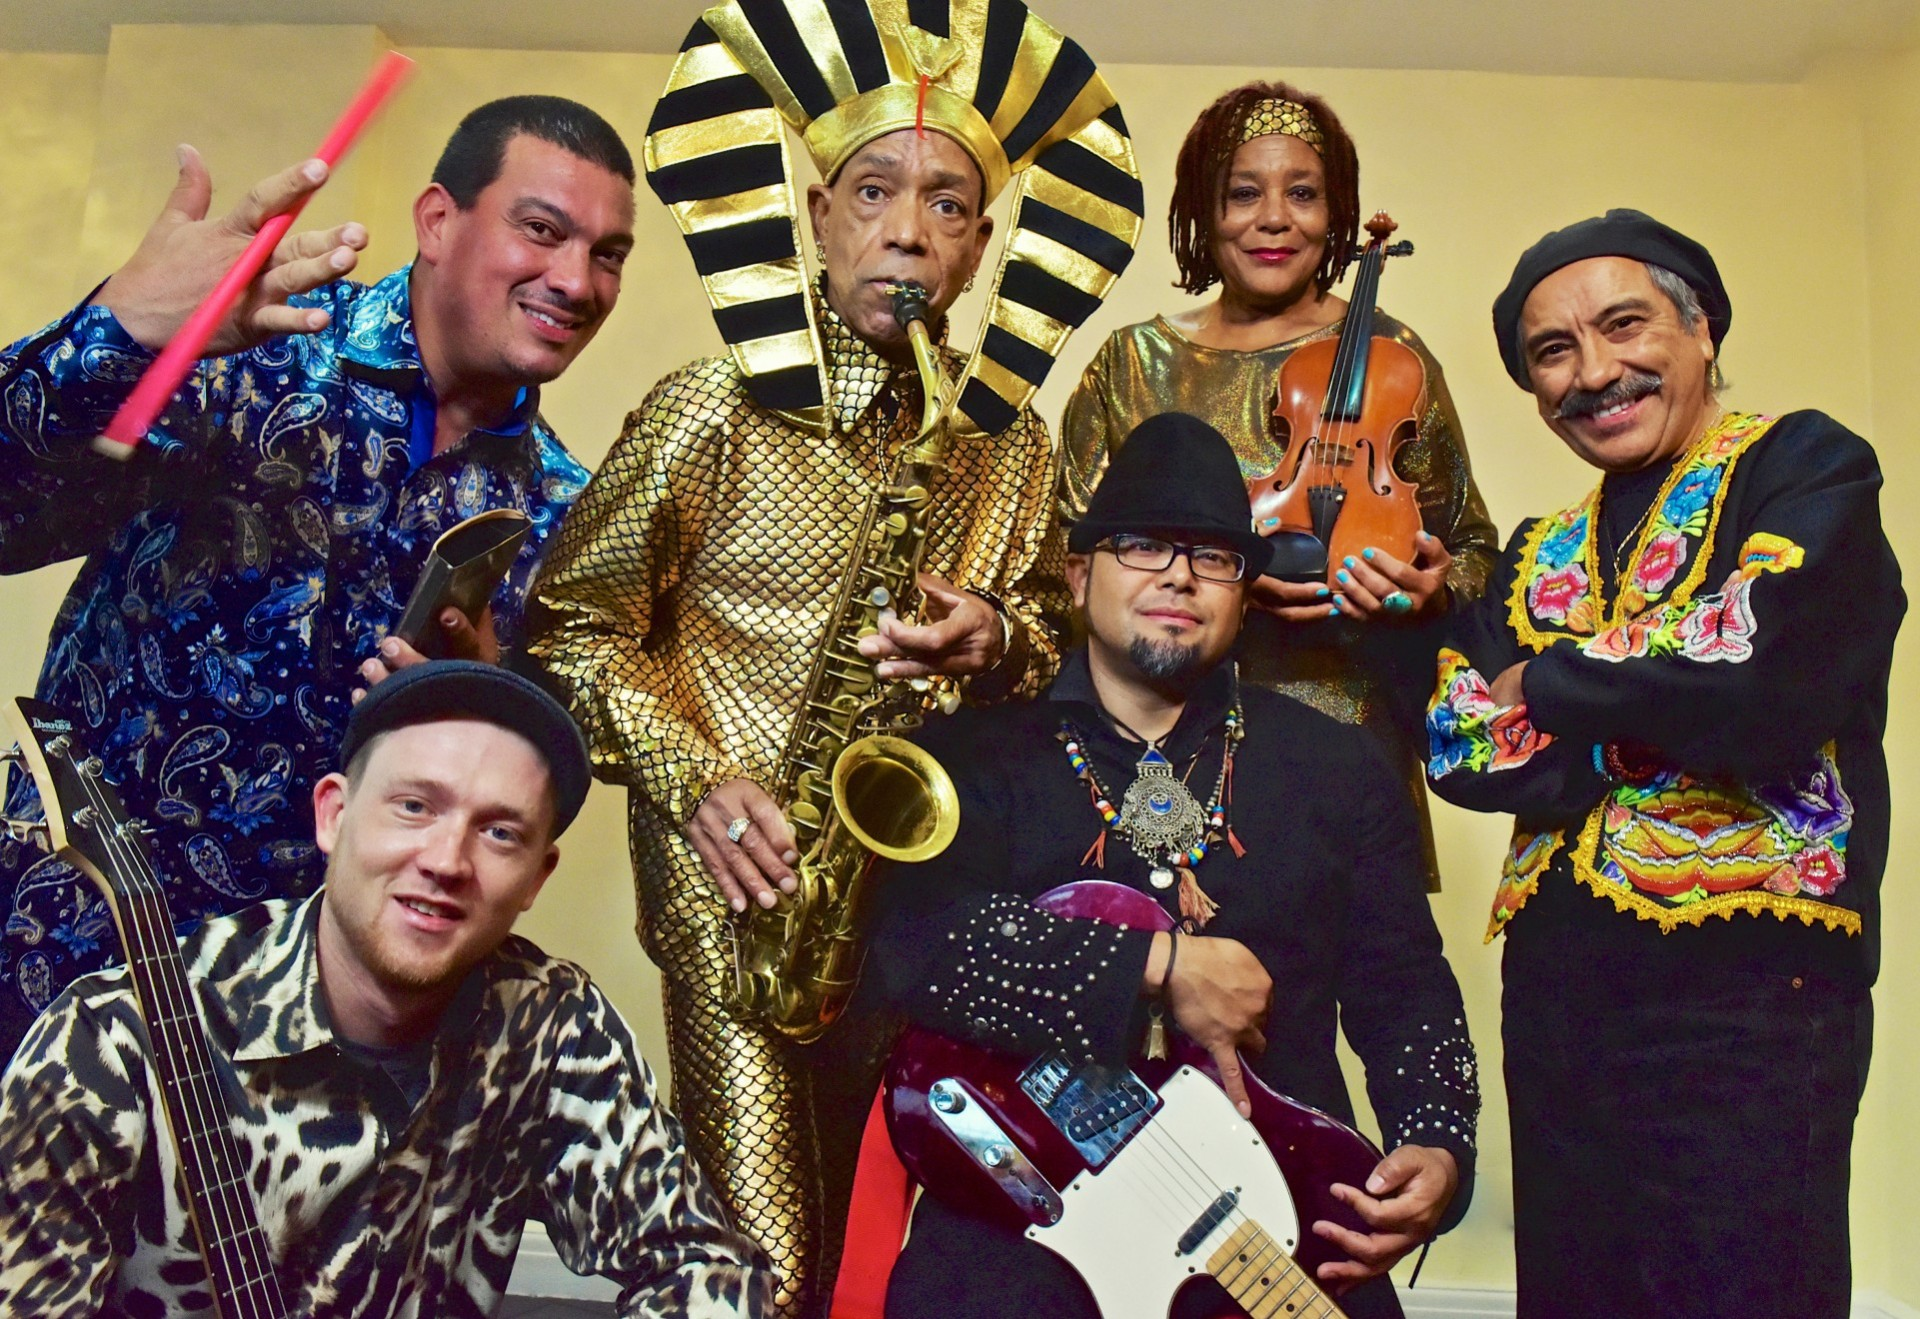 Idris Ackamoor and The Pyramids 2019 with support from Tony Bevan